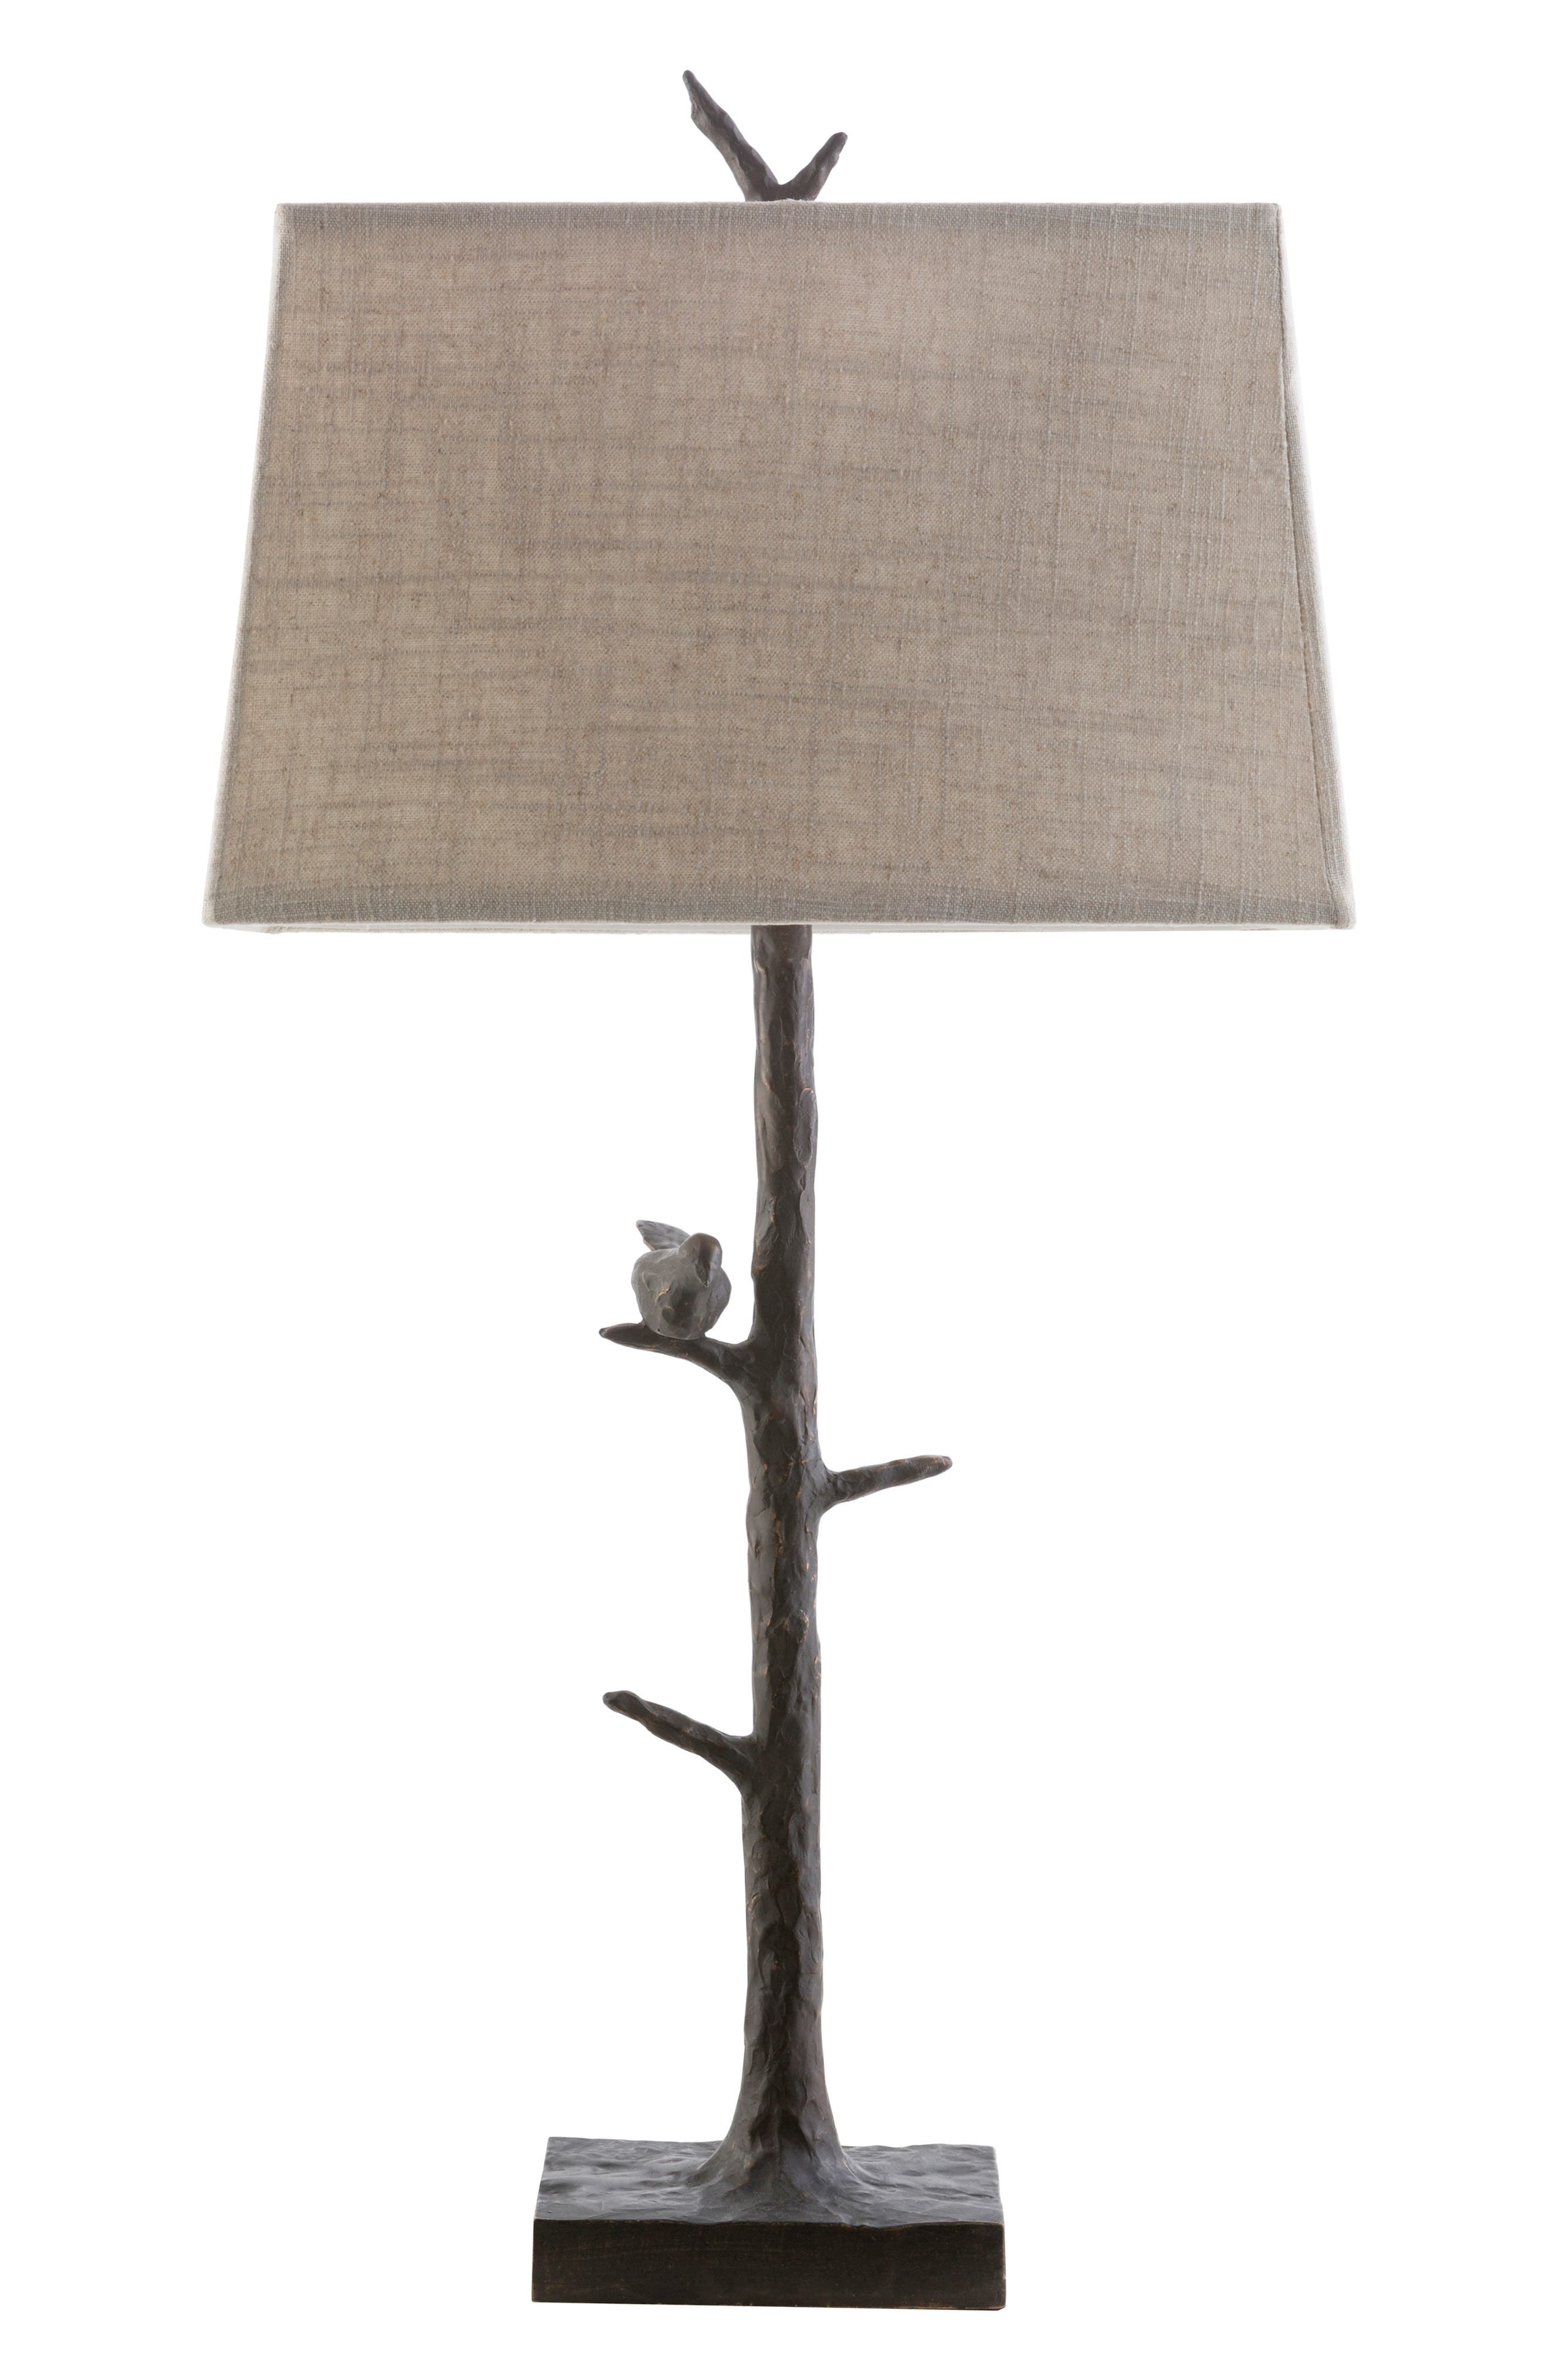 Table lamps lighting Stylish Surya Home Weber Branch Table Lamp Nordstrom Table Lamps Lighting Lamps Fans Nordstrom